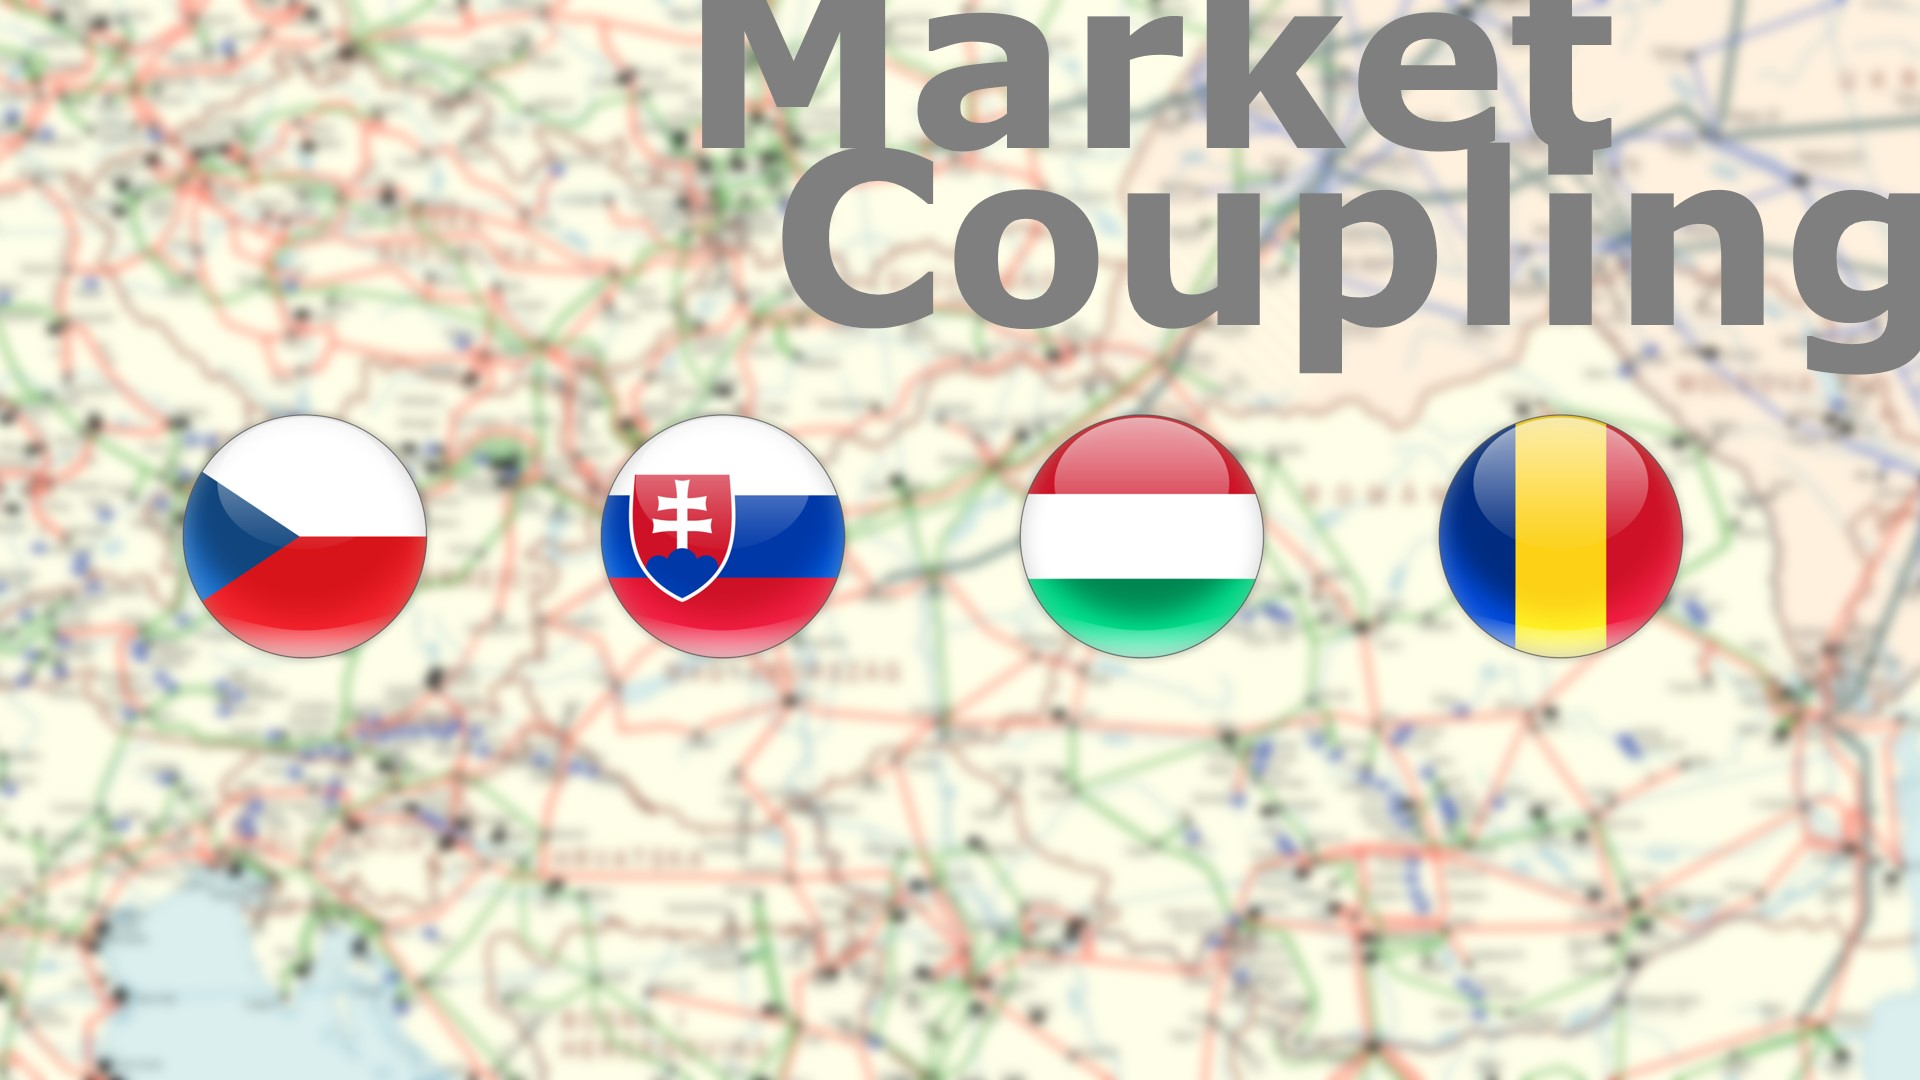 Go-live of 4M Market Coupling planned